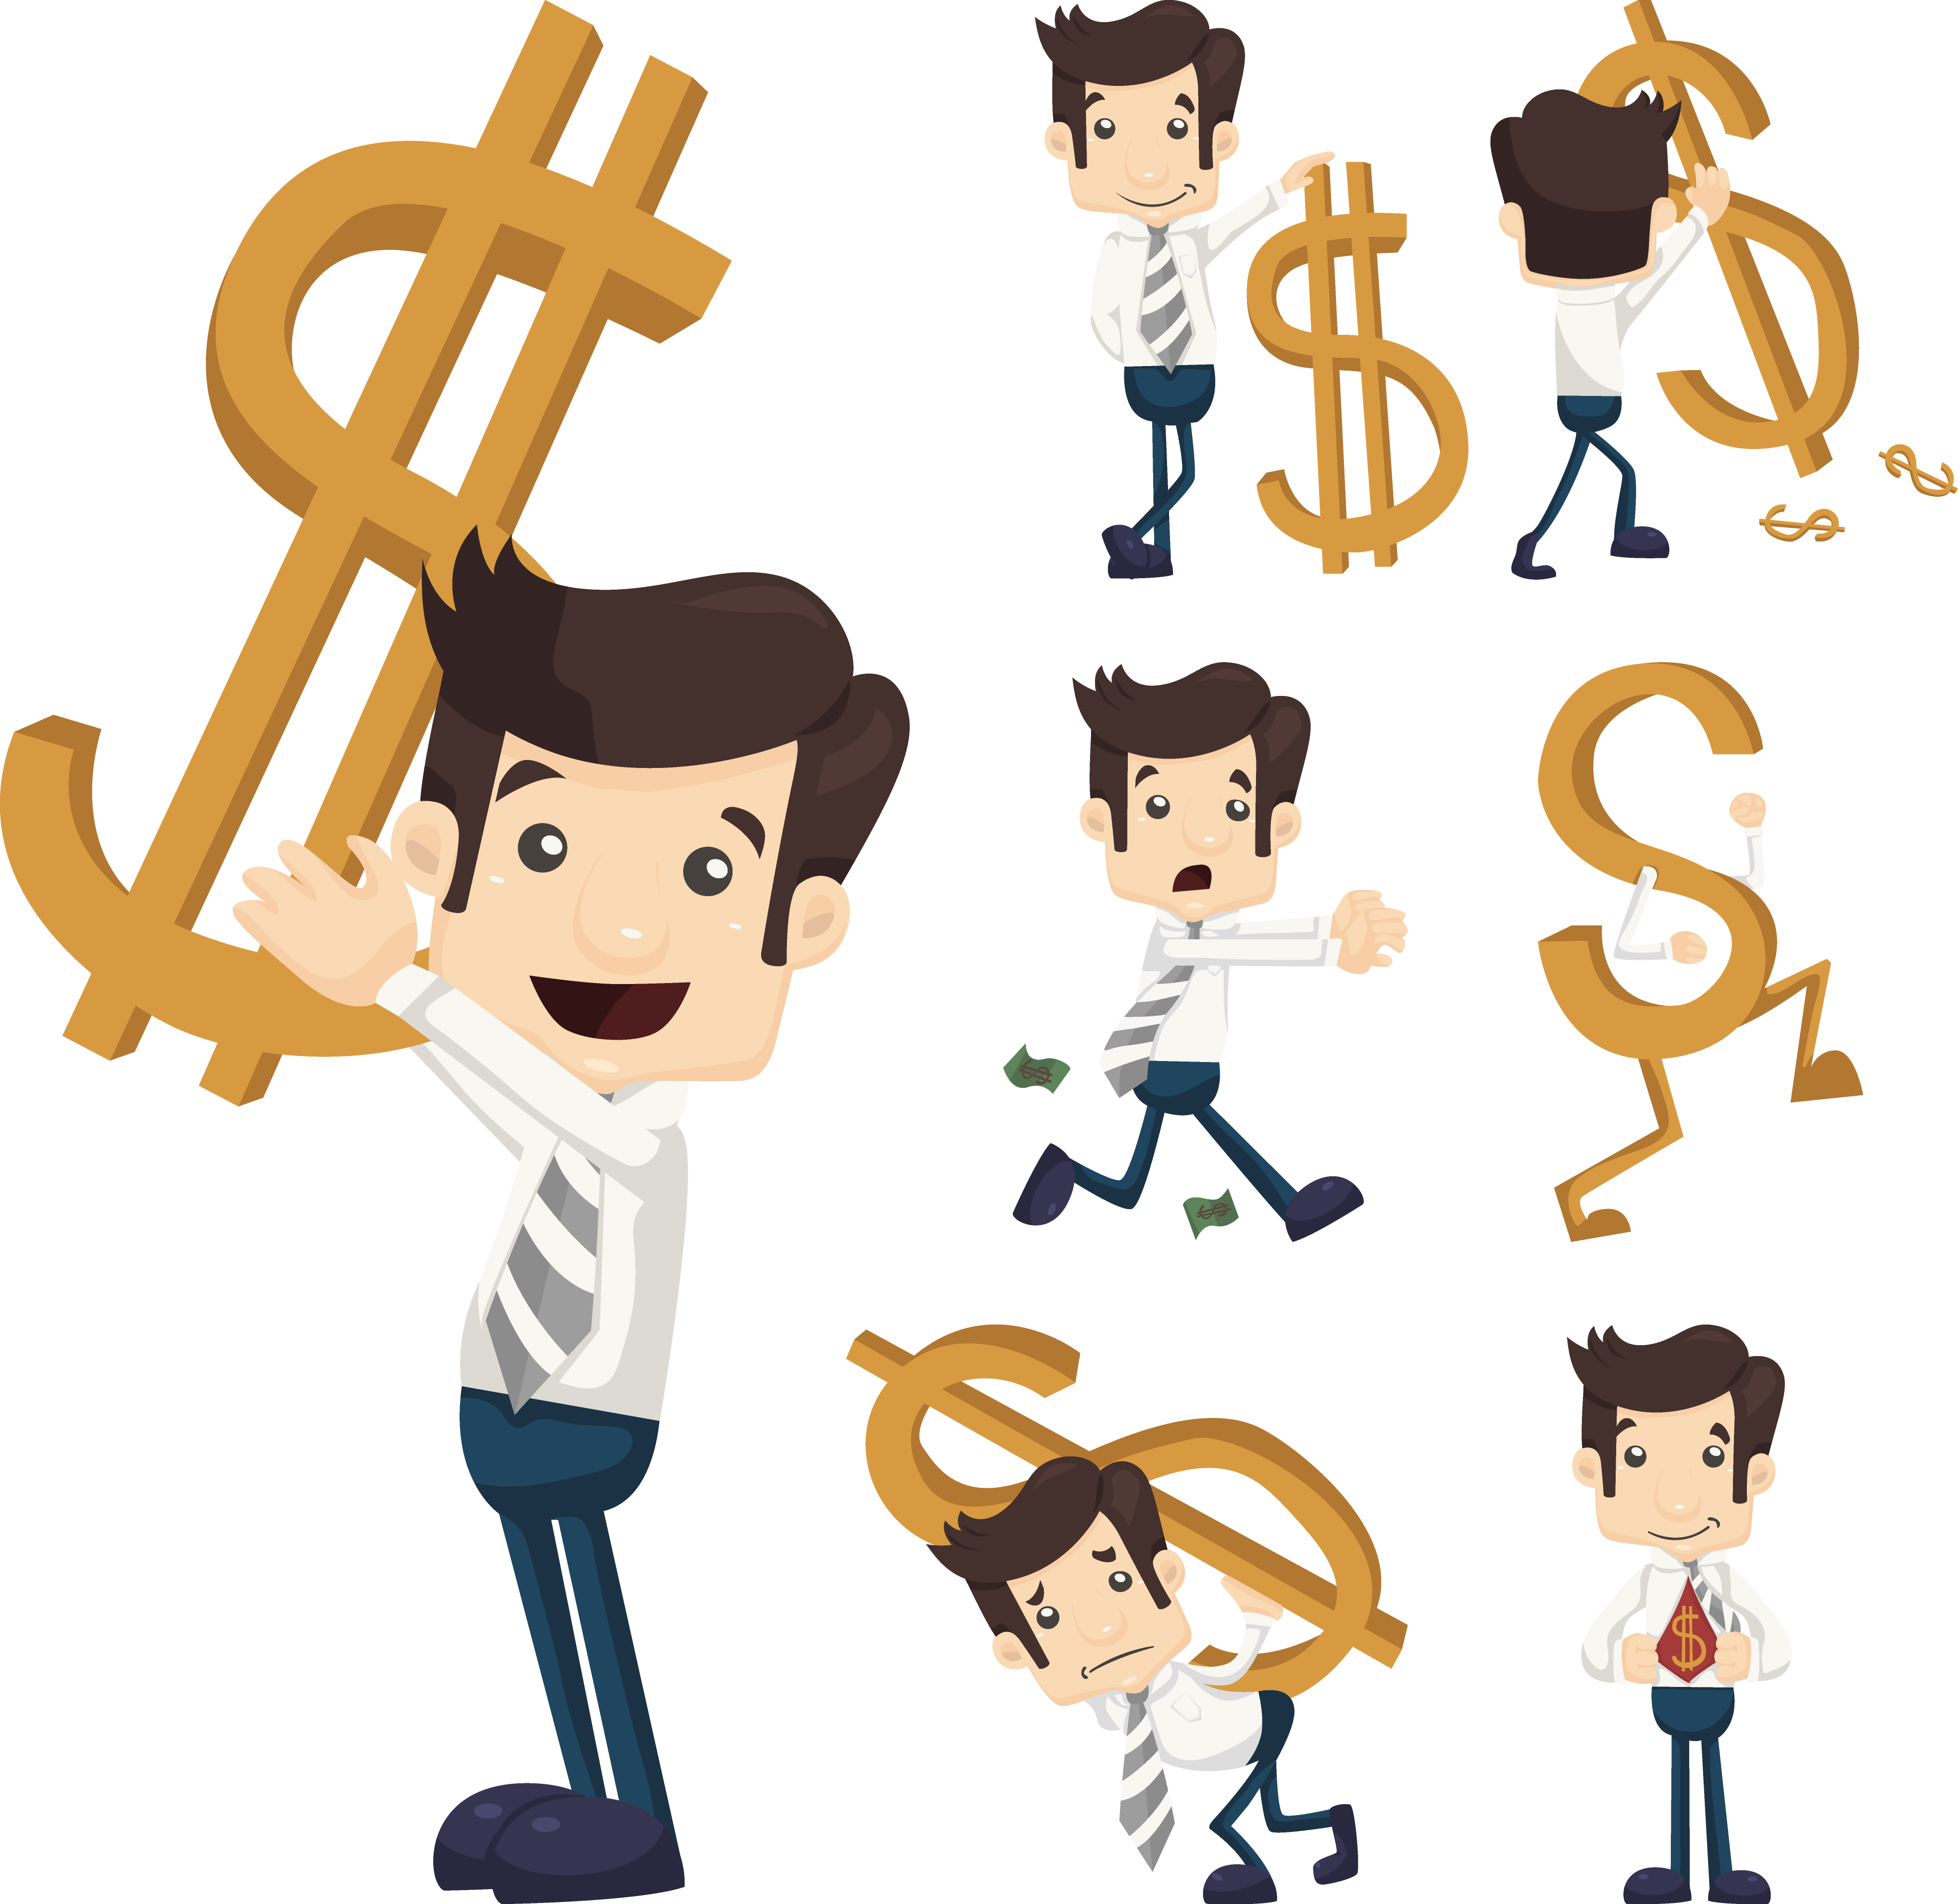 Chartered money cfa institute. Financial clipart financial analyst